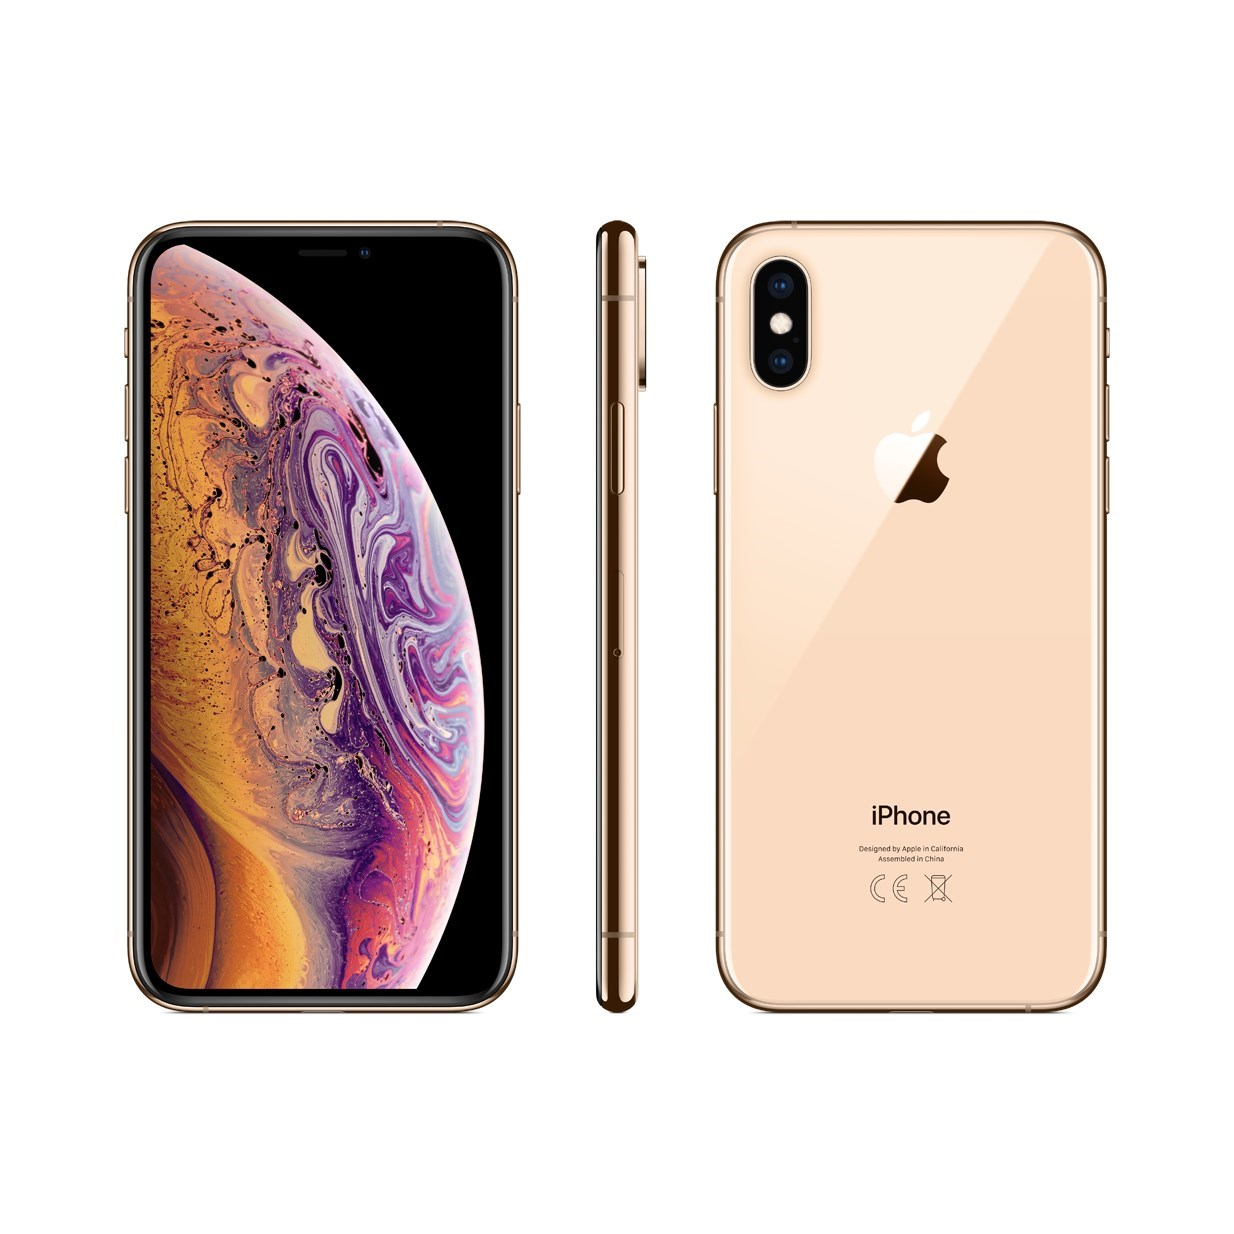 Image of Apple iPhone XS Max 64GB Dual Sim (2 nano-SIM) SIM FREE/ UNLOCKED A2104 - Gold